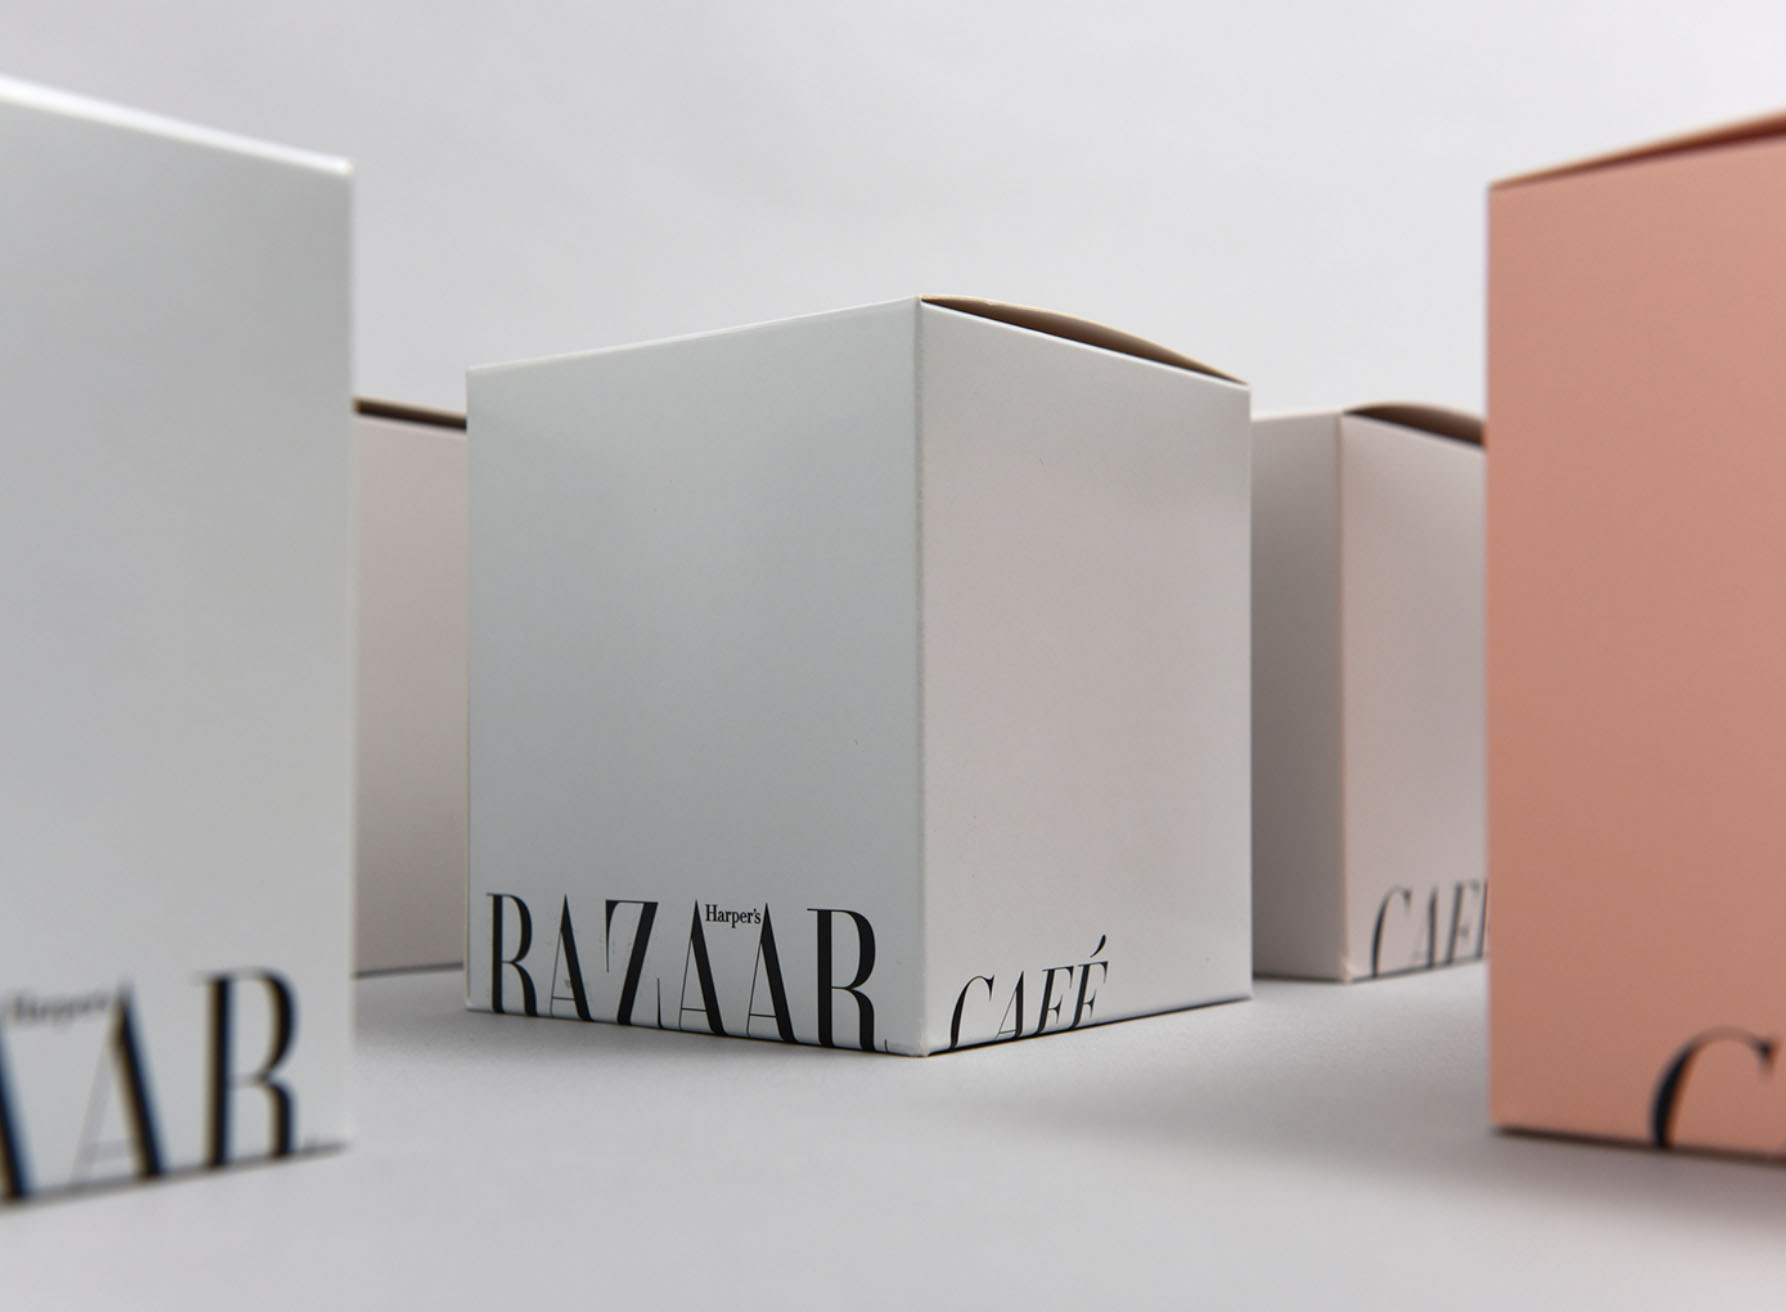 Identity and Packaging design for Harper's Bazaar Cafe by  Design&Practice